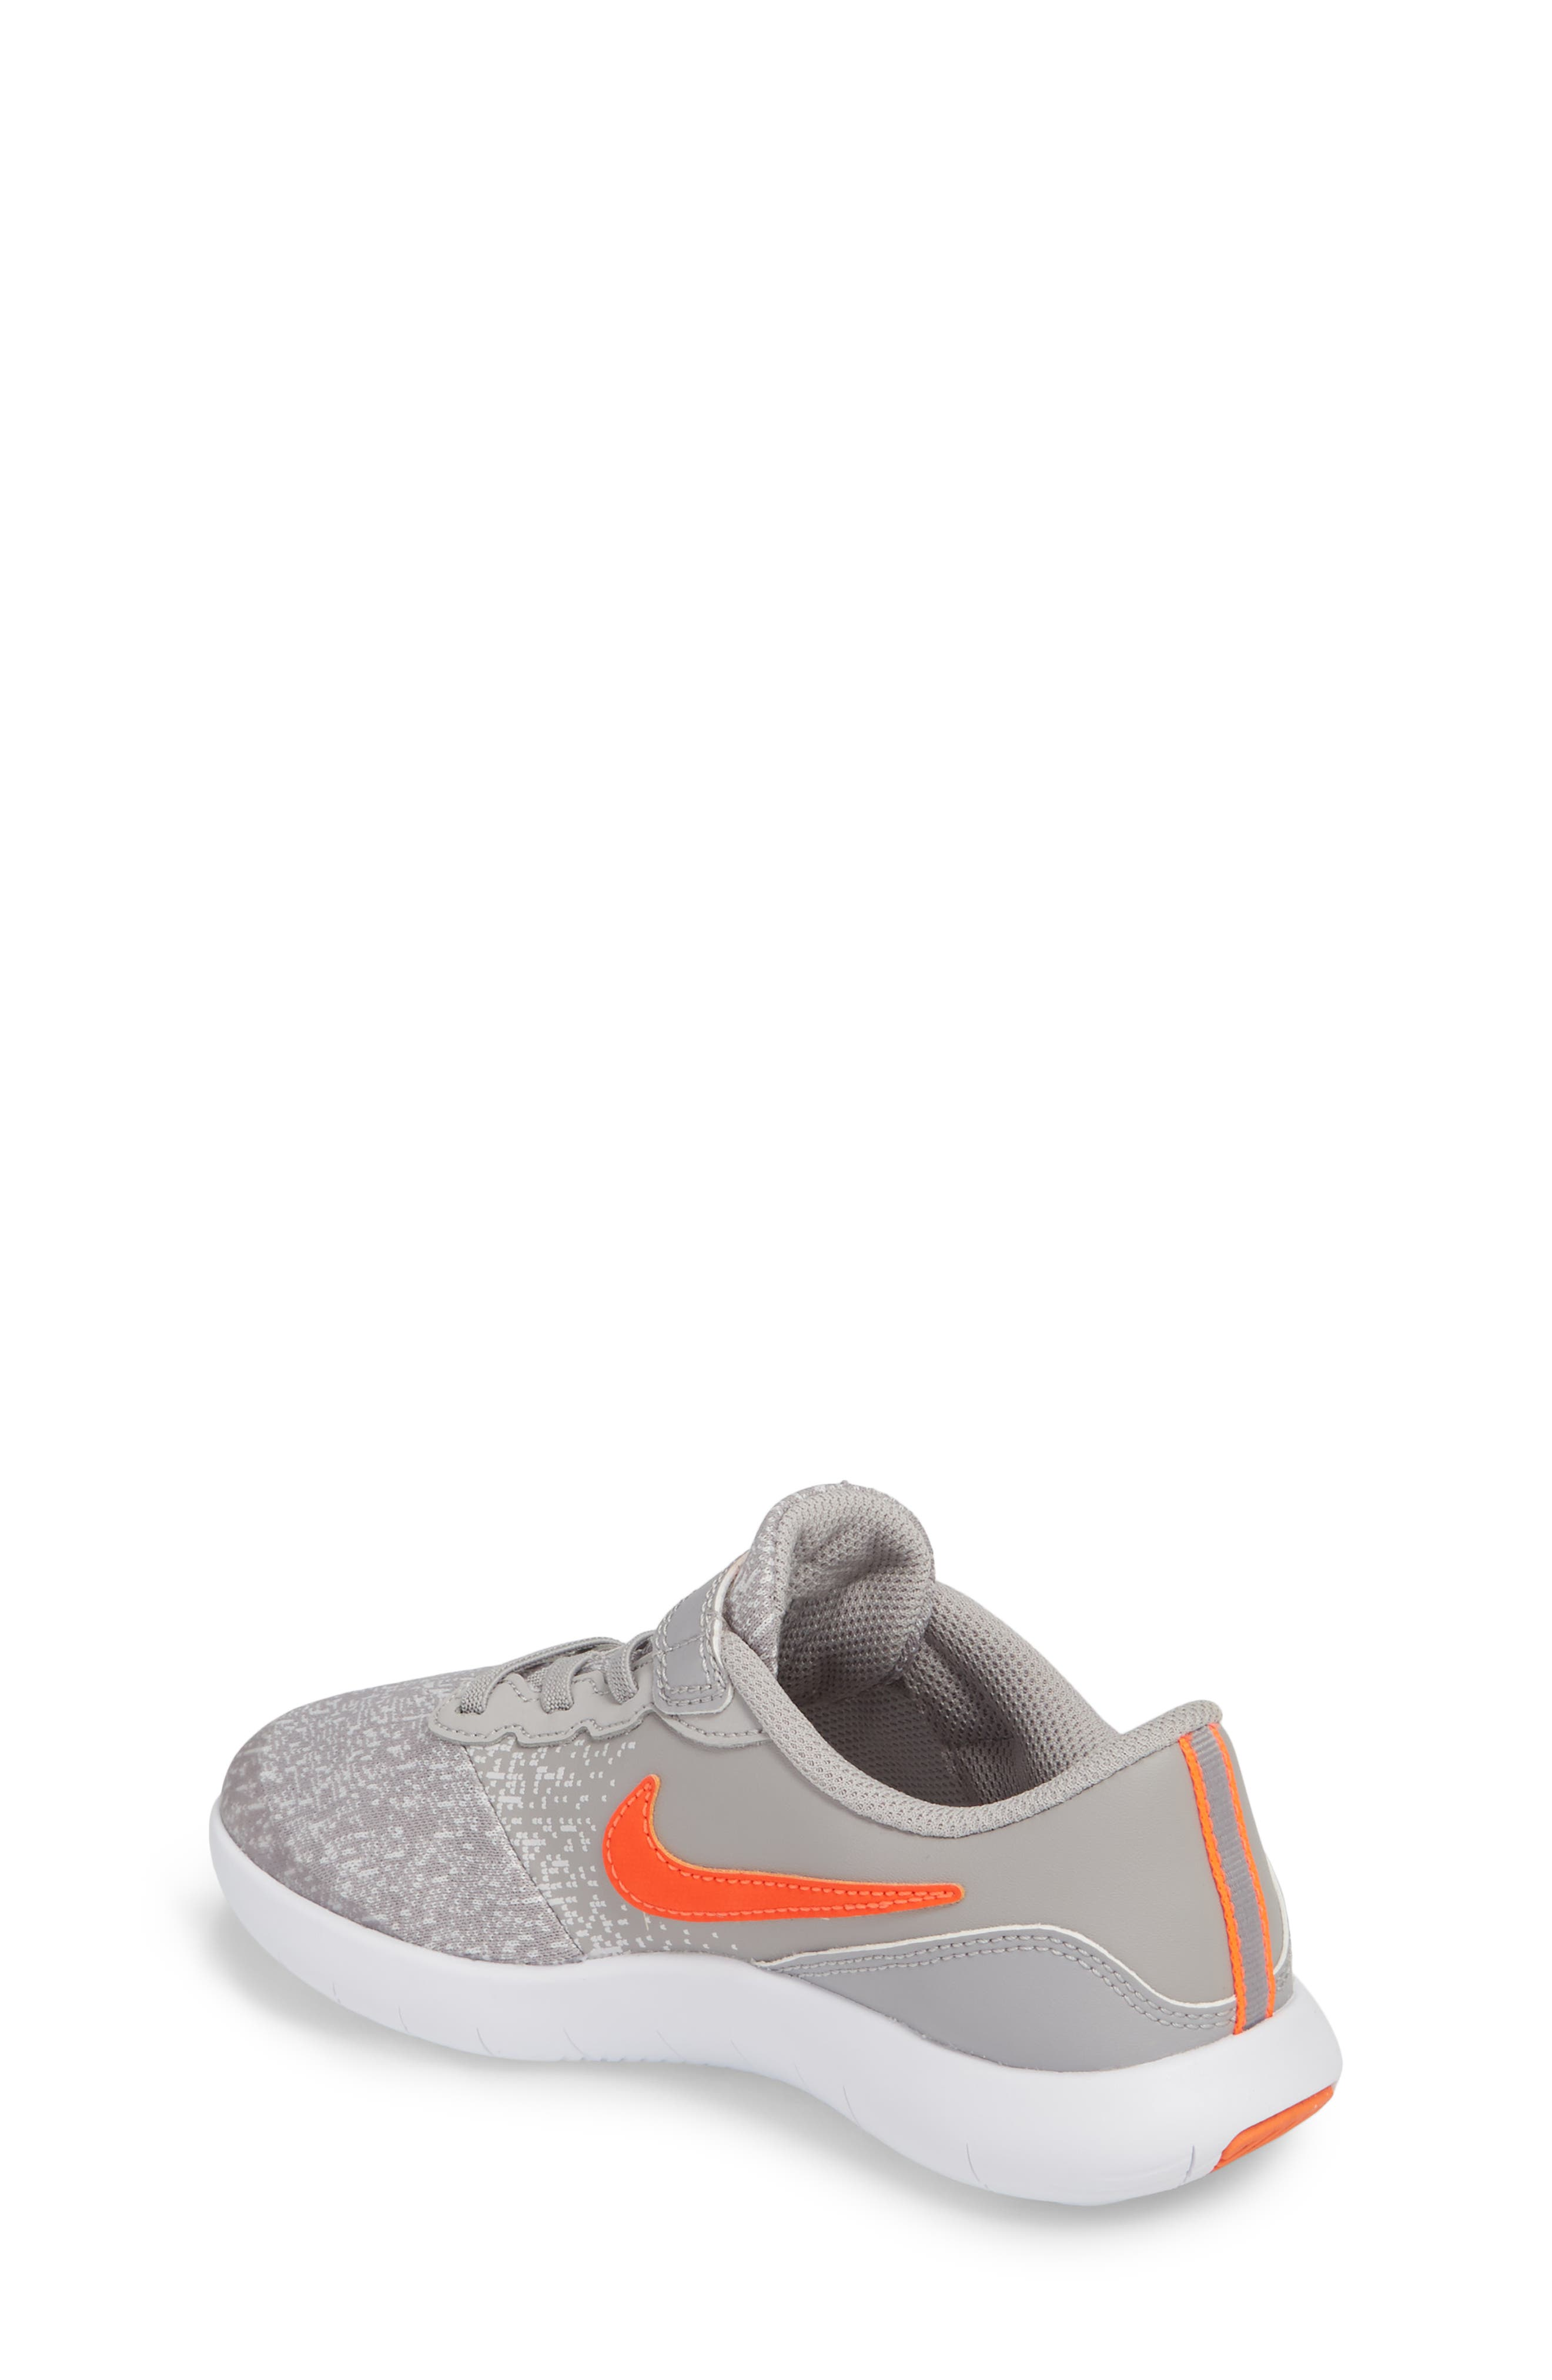 Flex Contact Running Shoe,                             Alternate thumbnail 3, color,                             Atmosphere Grey/ Total Crimson